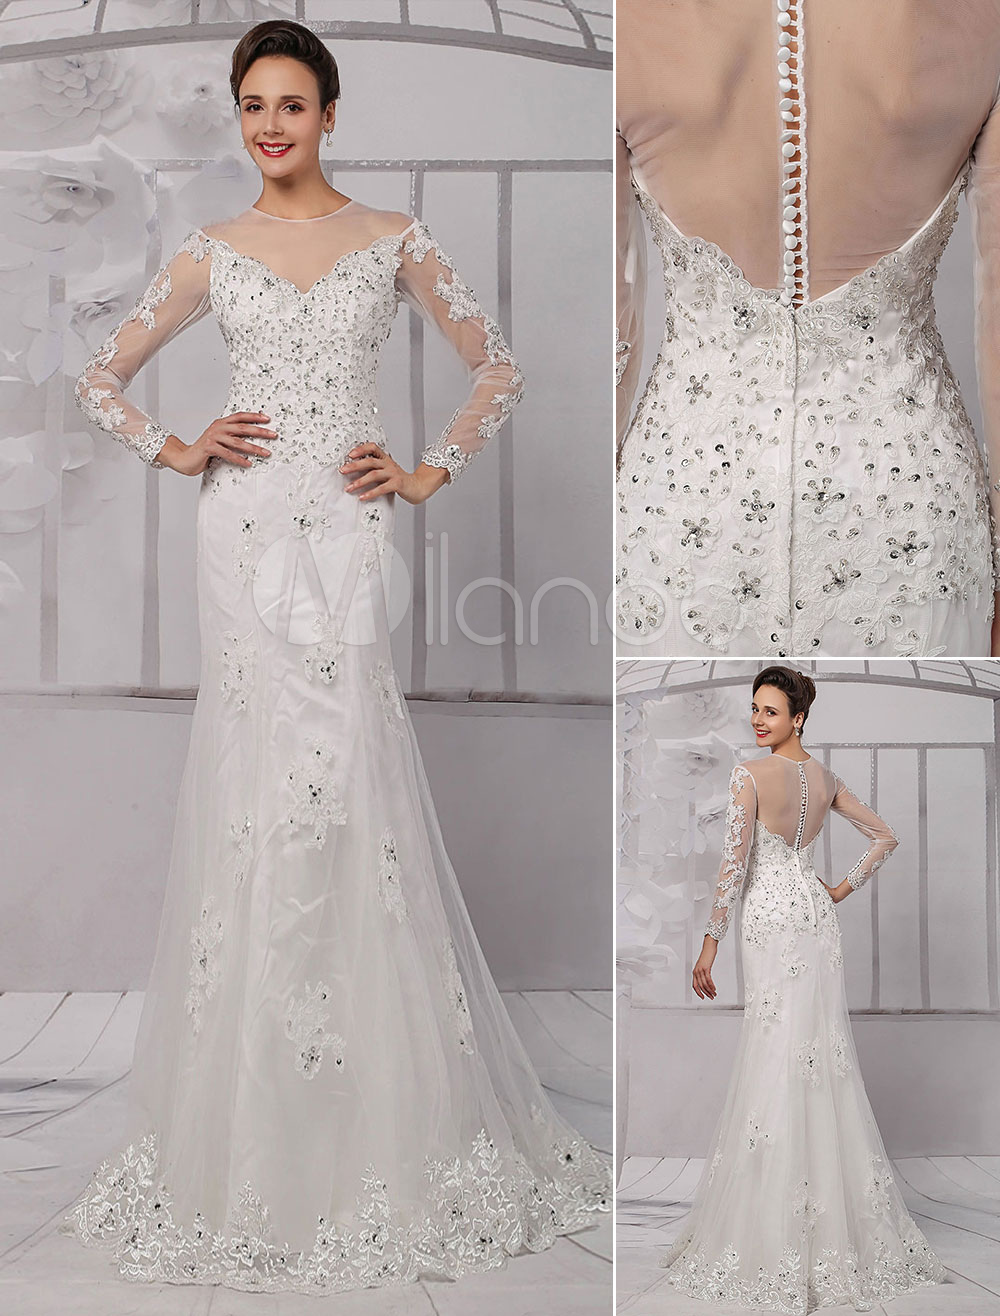 Lace illusion neckline long sleeves knee length sheath for Sheath wedding dress with beading and side drape